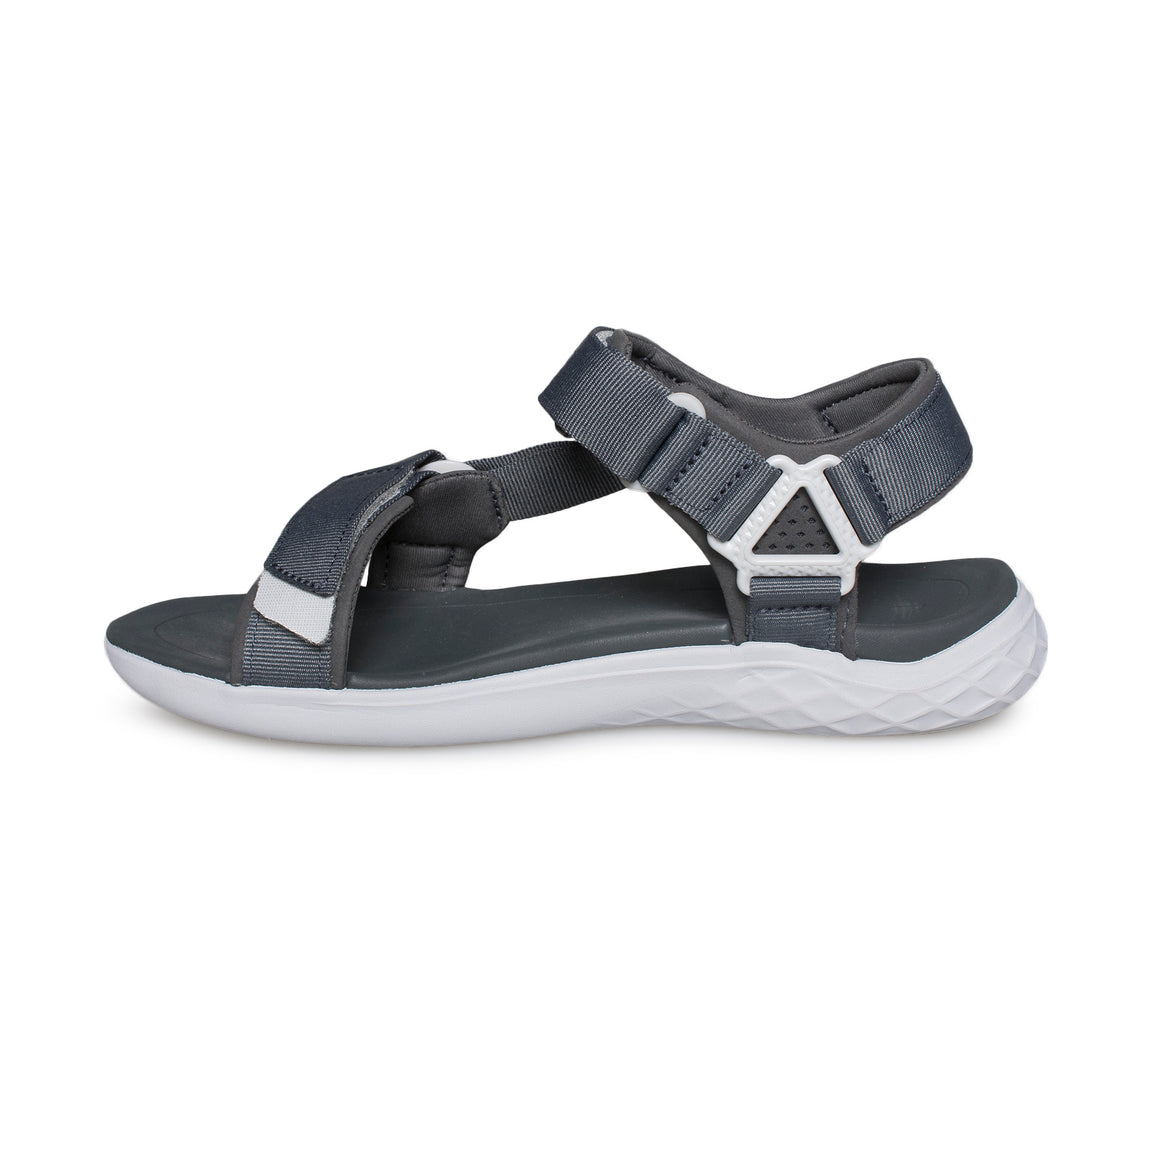 TEVA Terra Float 2 Universal Dark Shadow Sandal's - Men's